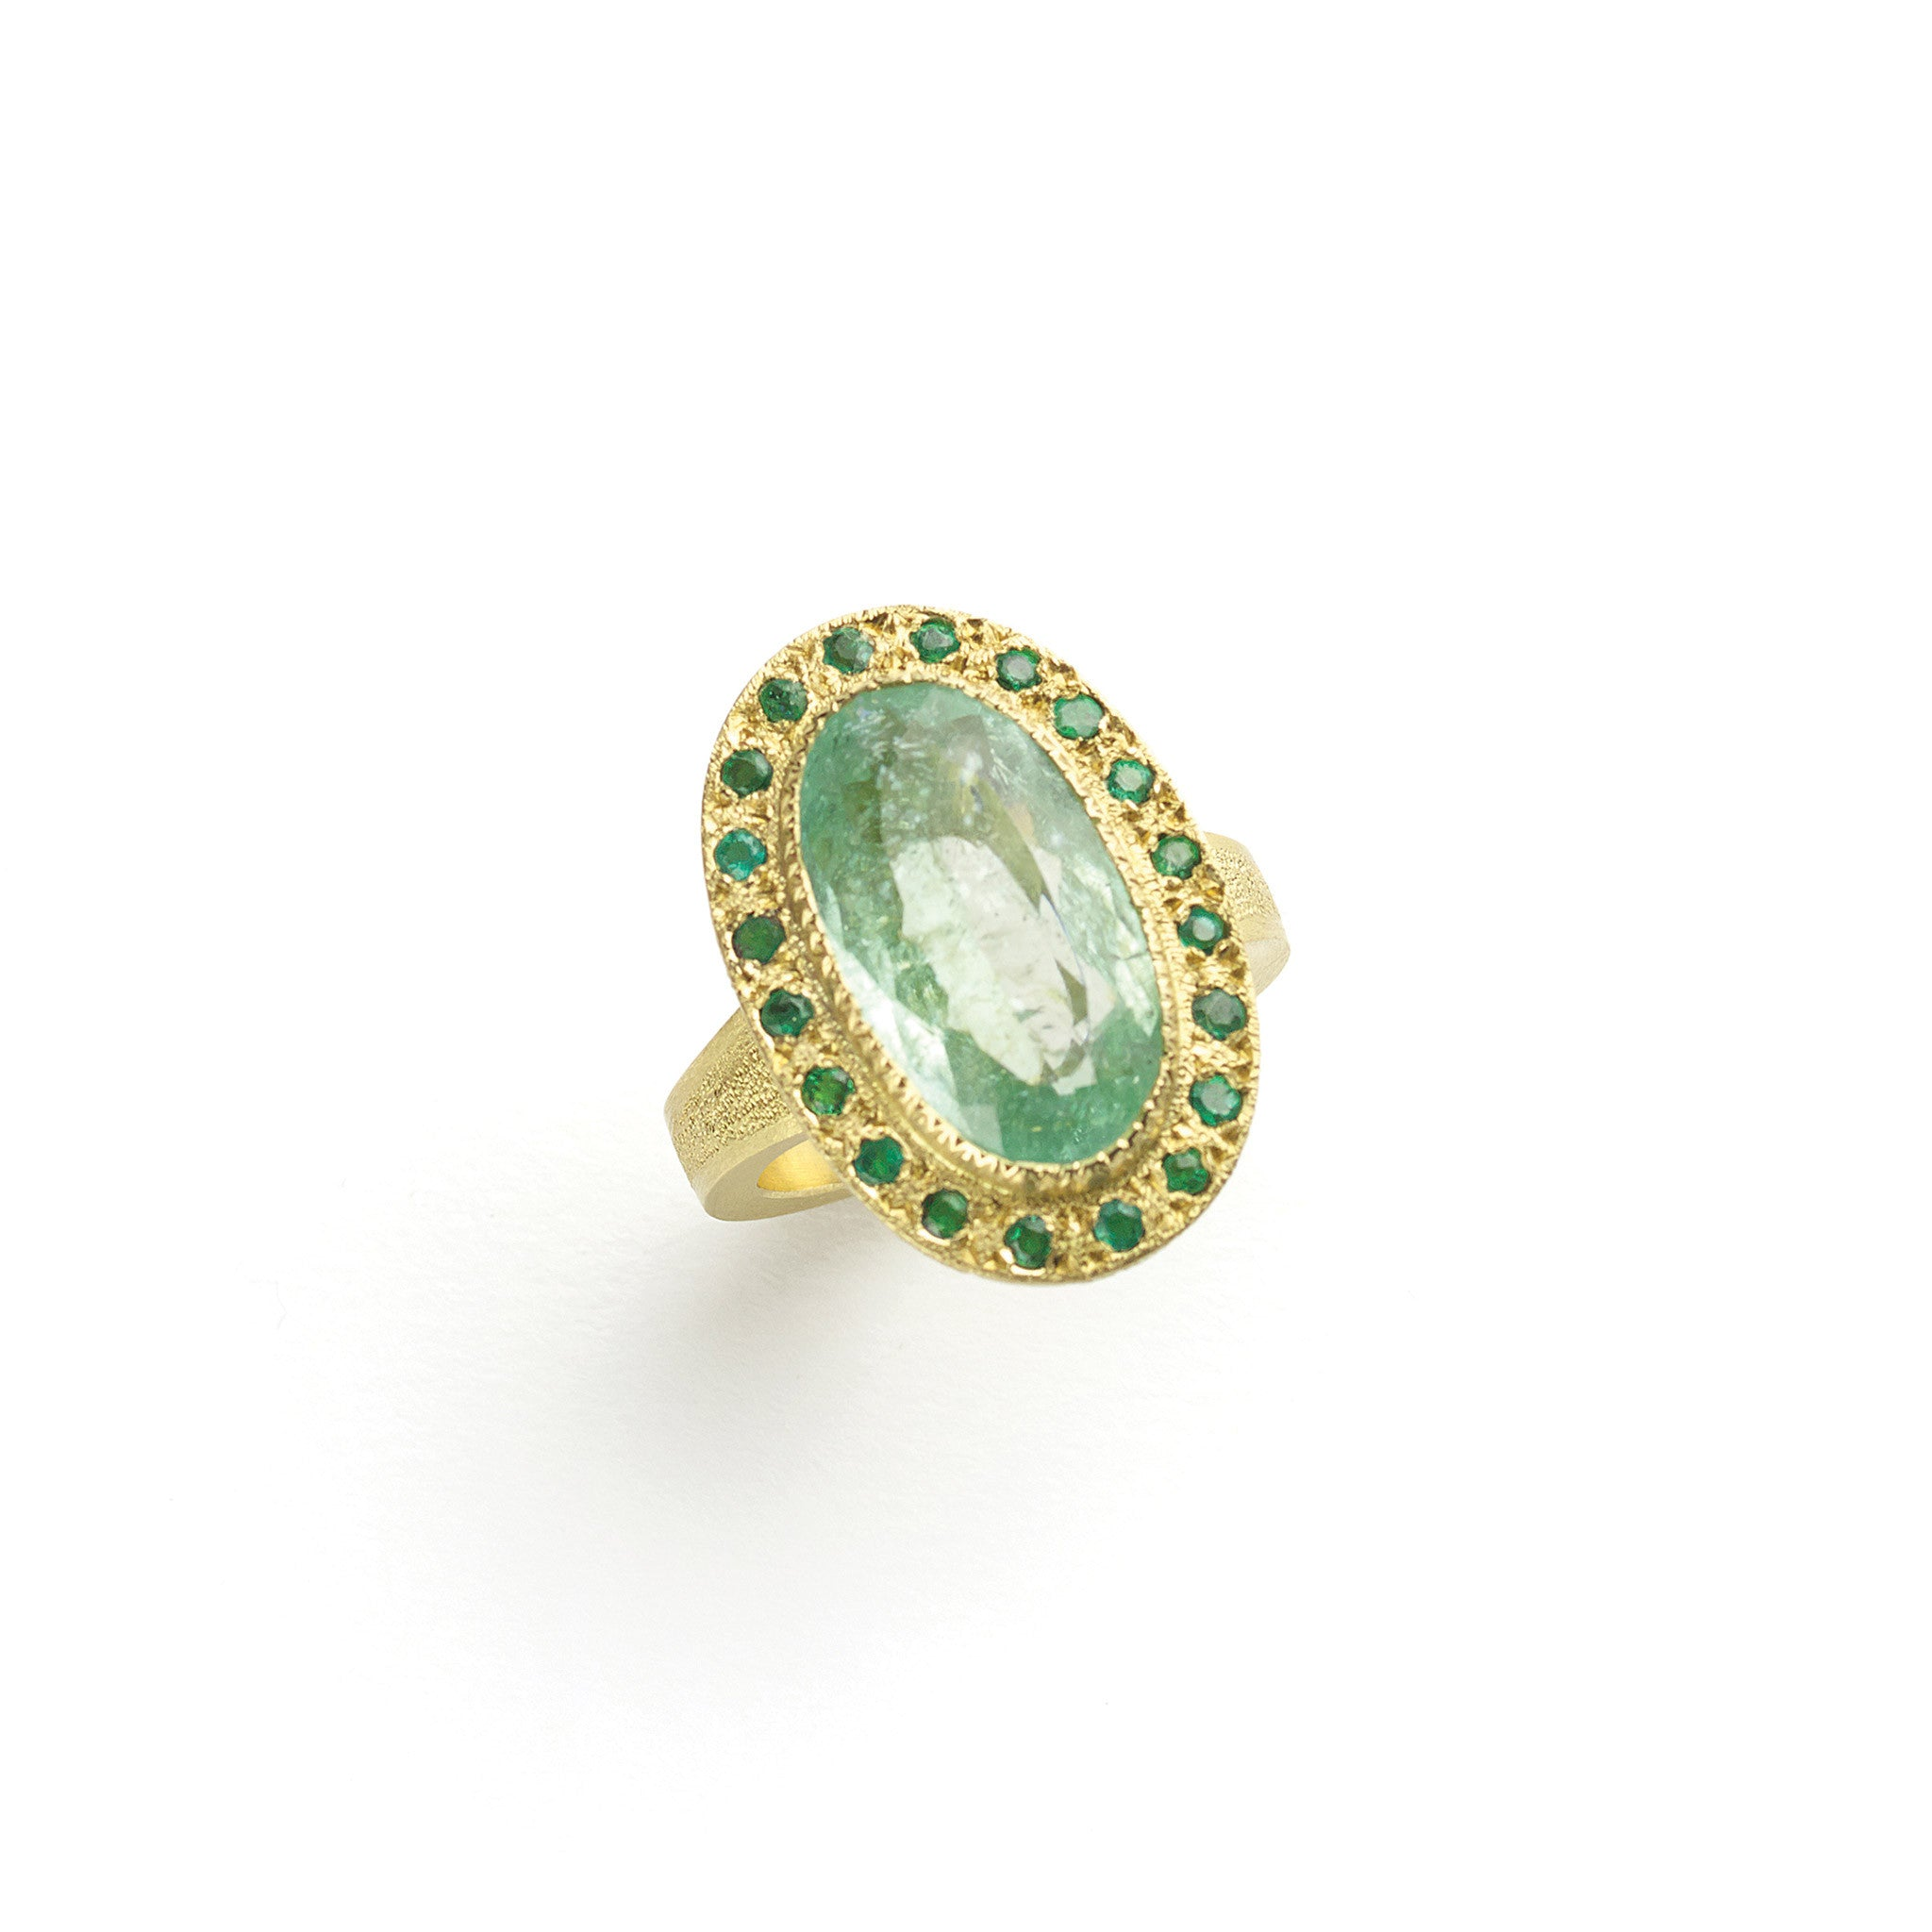 emerald in rings green cut ring silhouette pave with and center uneek stone emeral platinum shank three